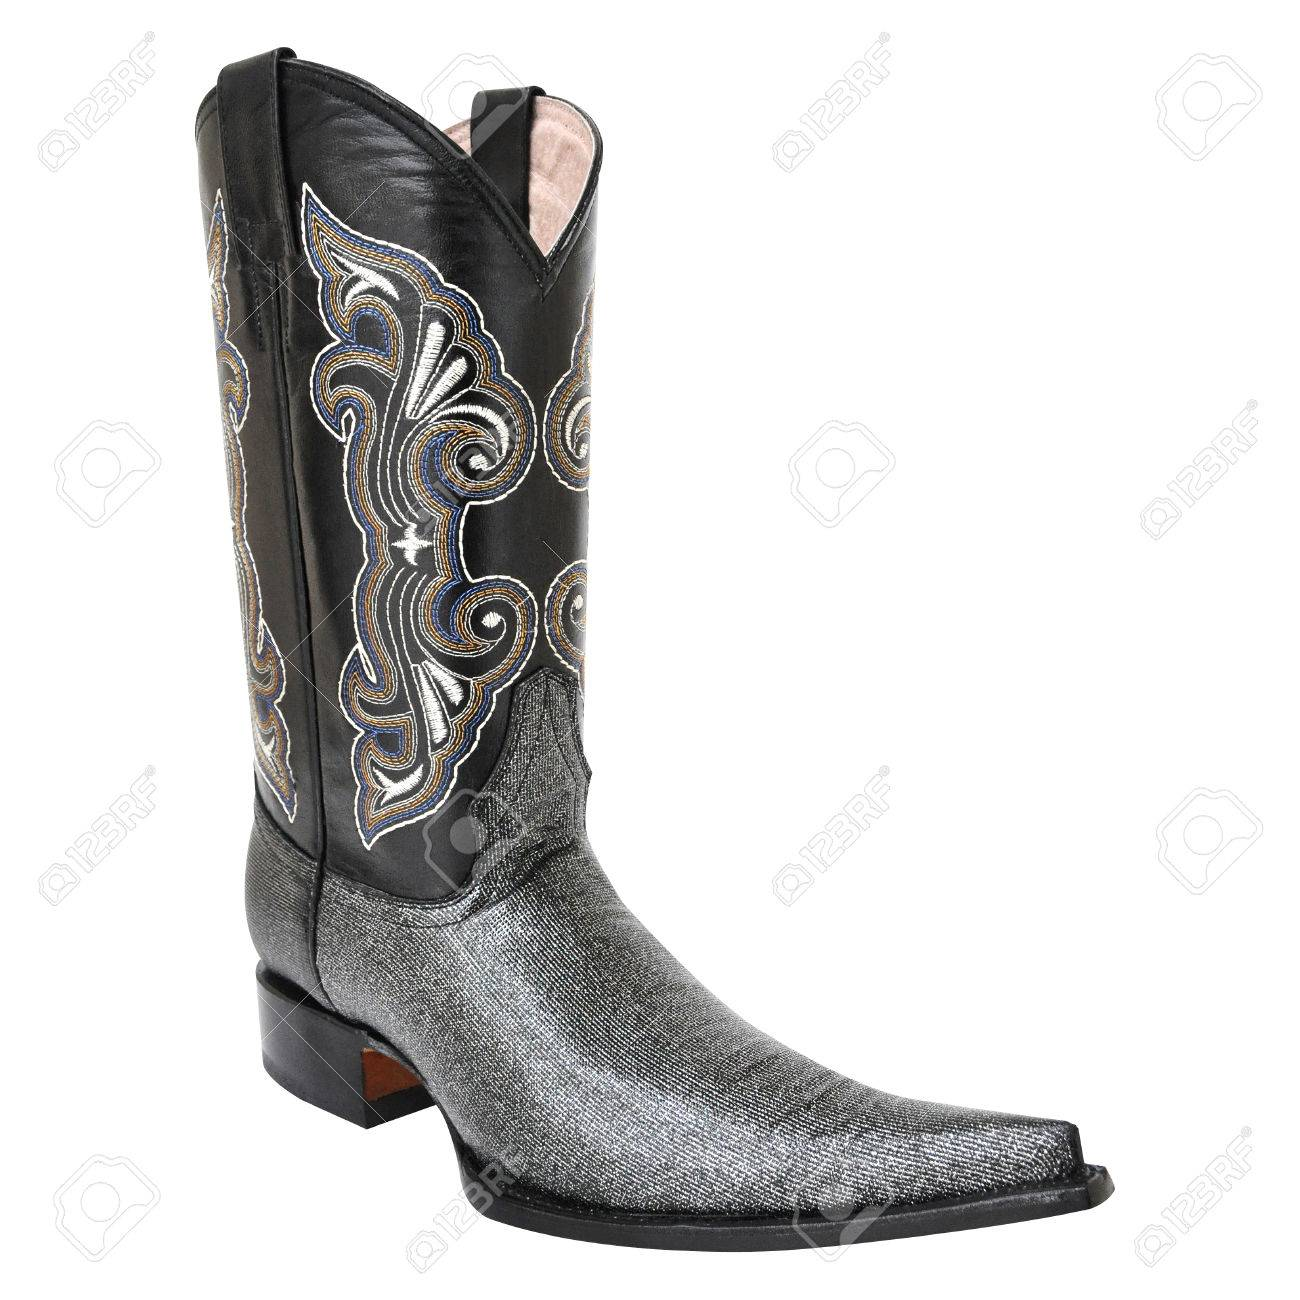 fd700ec0a1c Pointy cowboy boot isolated on white background